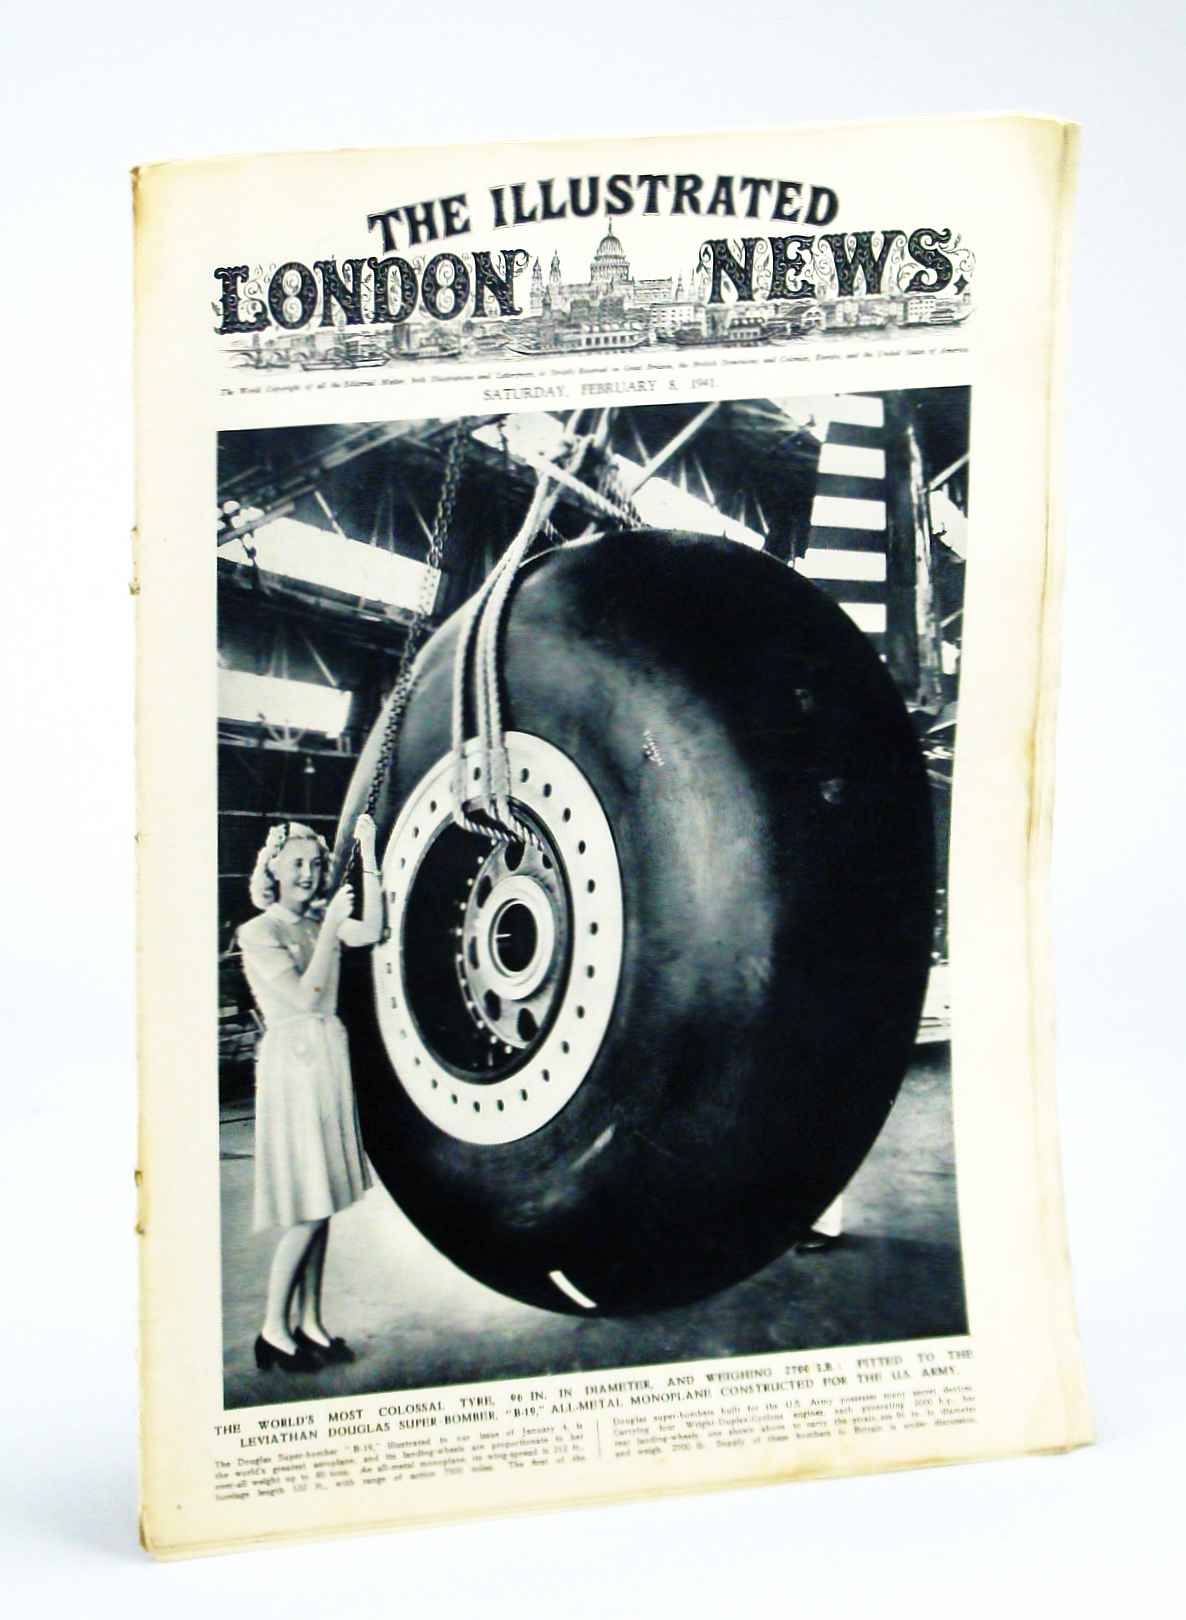 Image for The Illustrated London News, Saturday, February [Feb.] 8, 1941 - Ultra High-Speed X-Ray Photo Samples